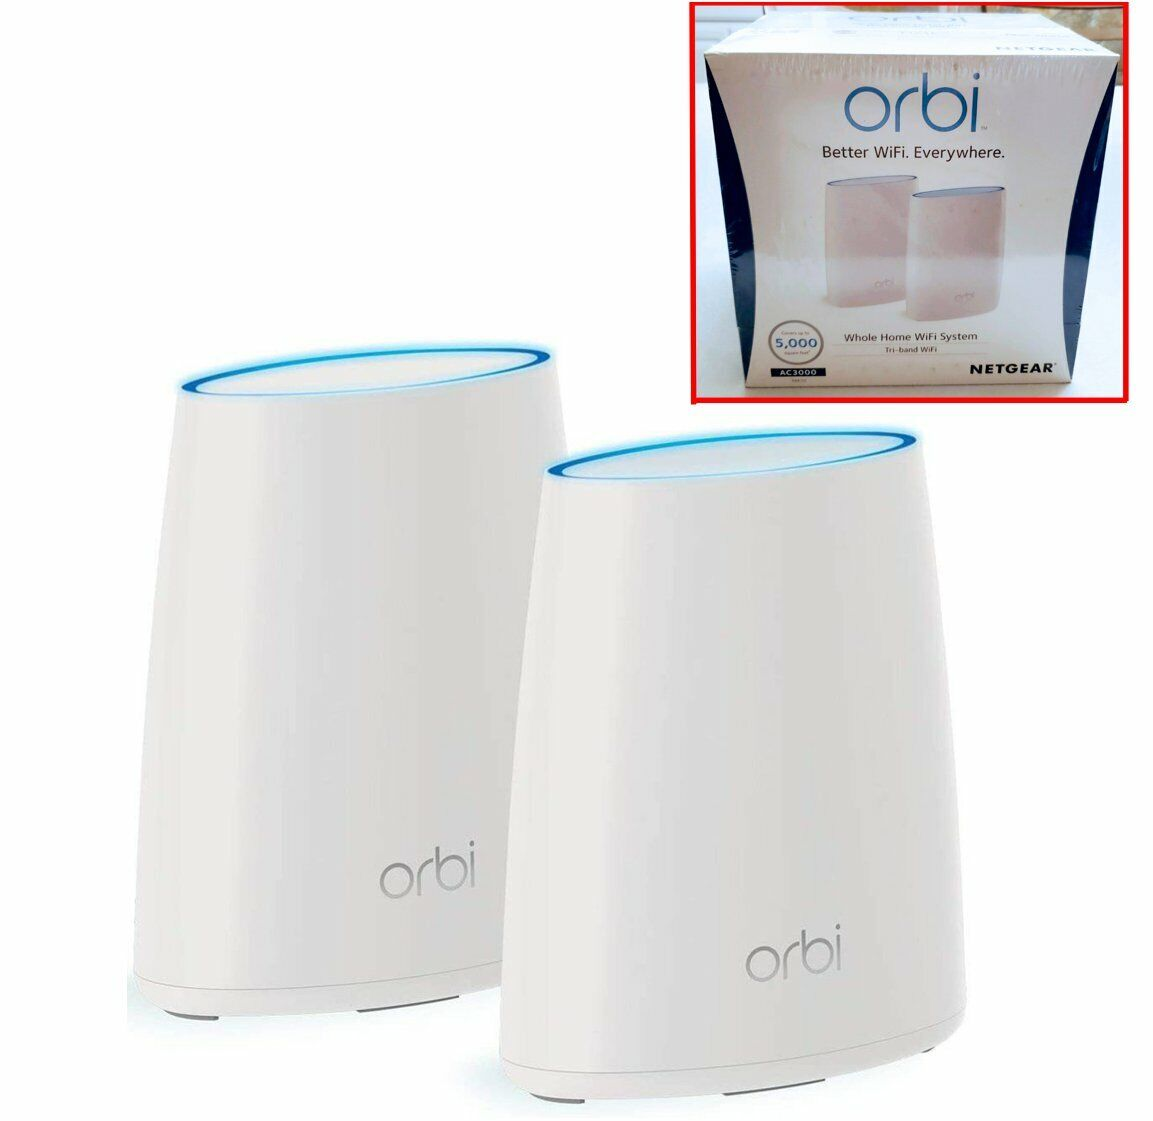 NEW NETGEAR ORBI AC3000 TRI-BAND WHOLE HOME WiFi ROUTER SYSTEM RBK50 Pack Of 2 - $239.97